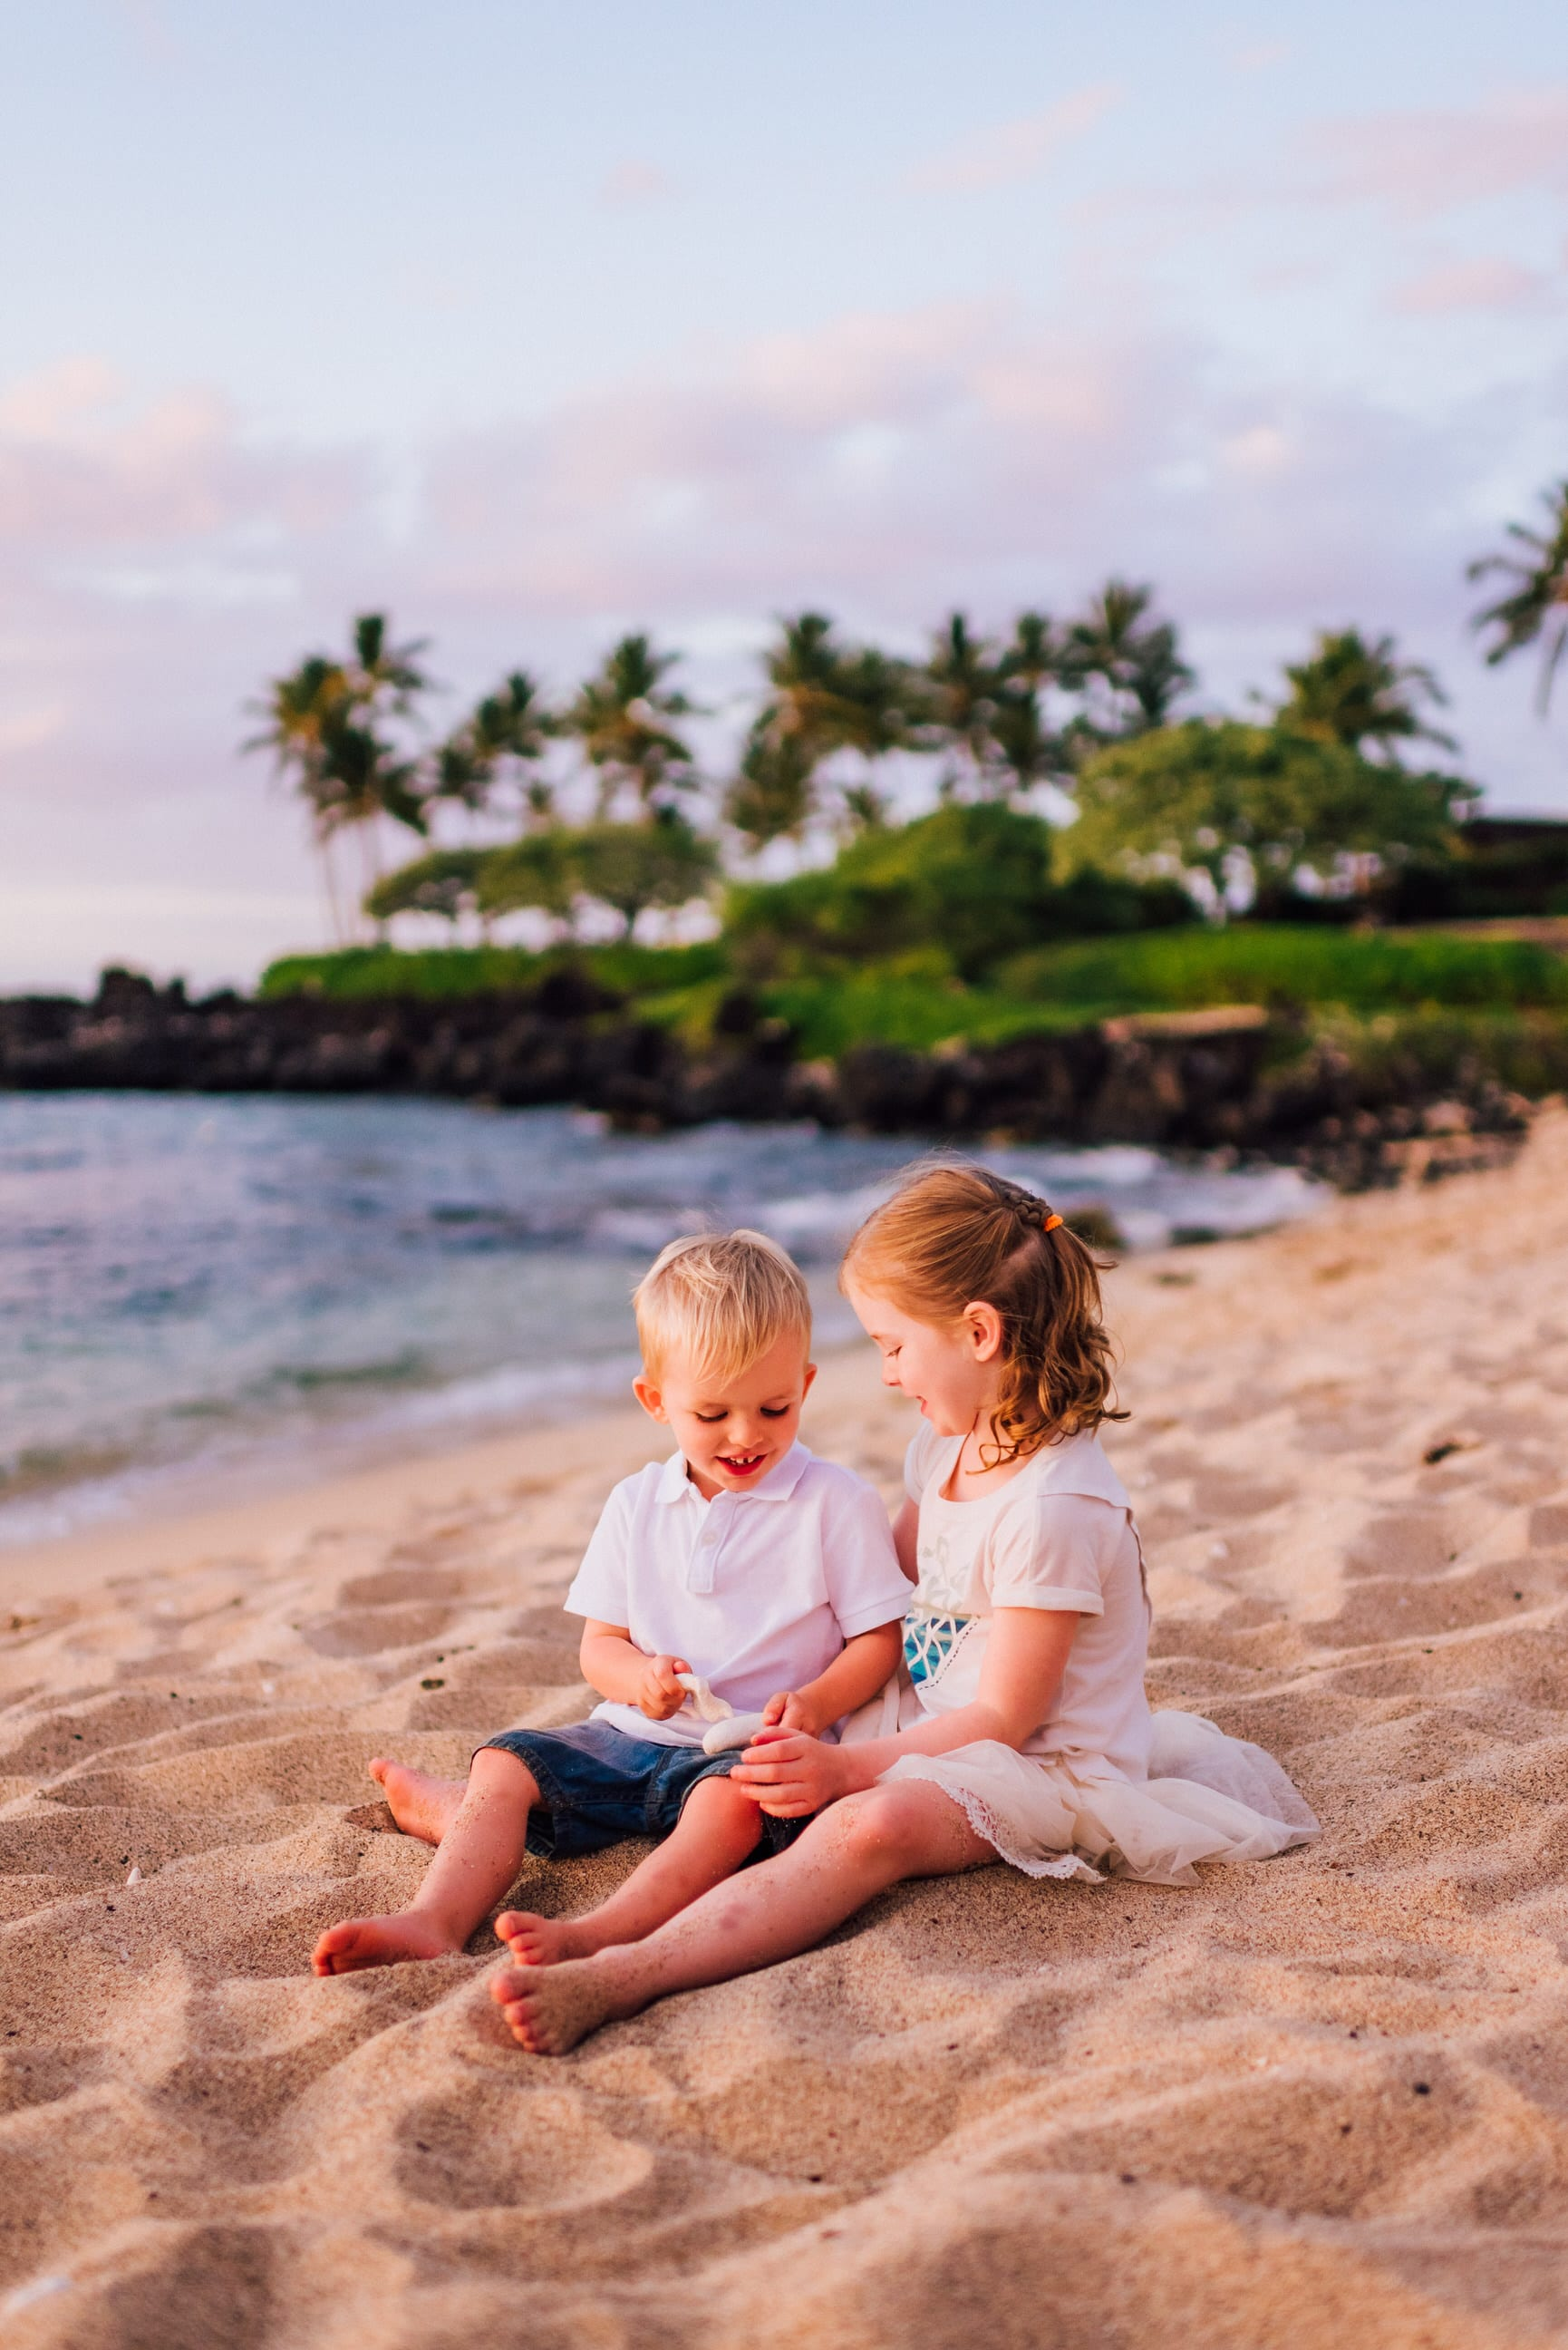 Hawaii-Family-Photos-Beach-Waikoloa-25.jpg